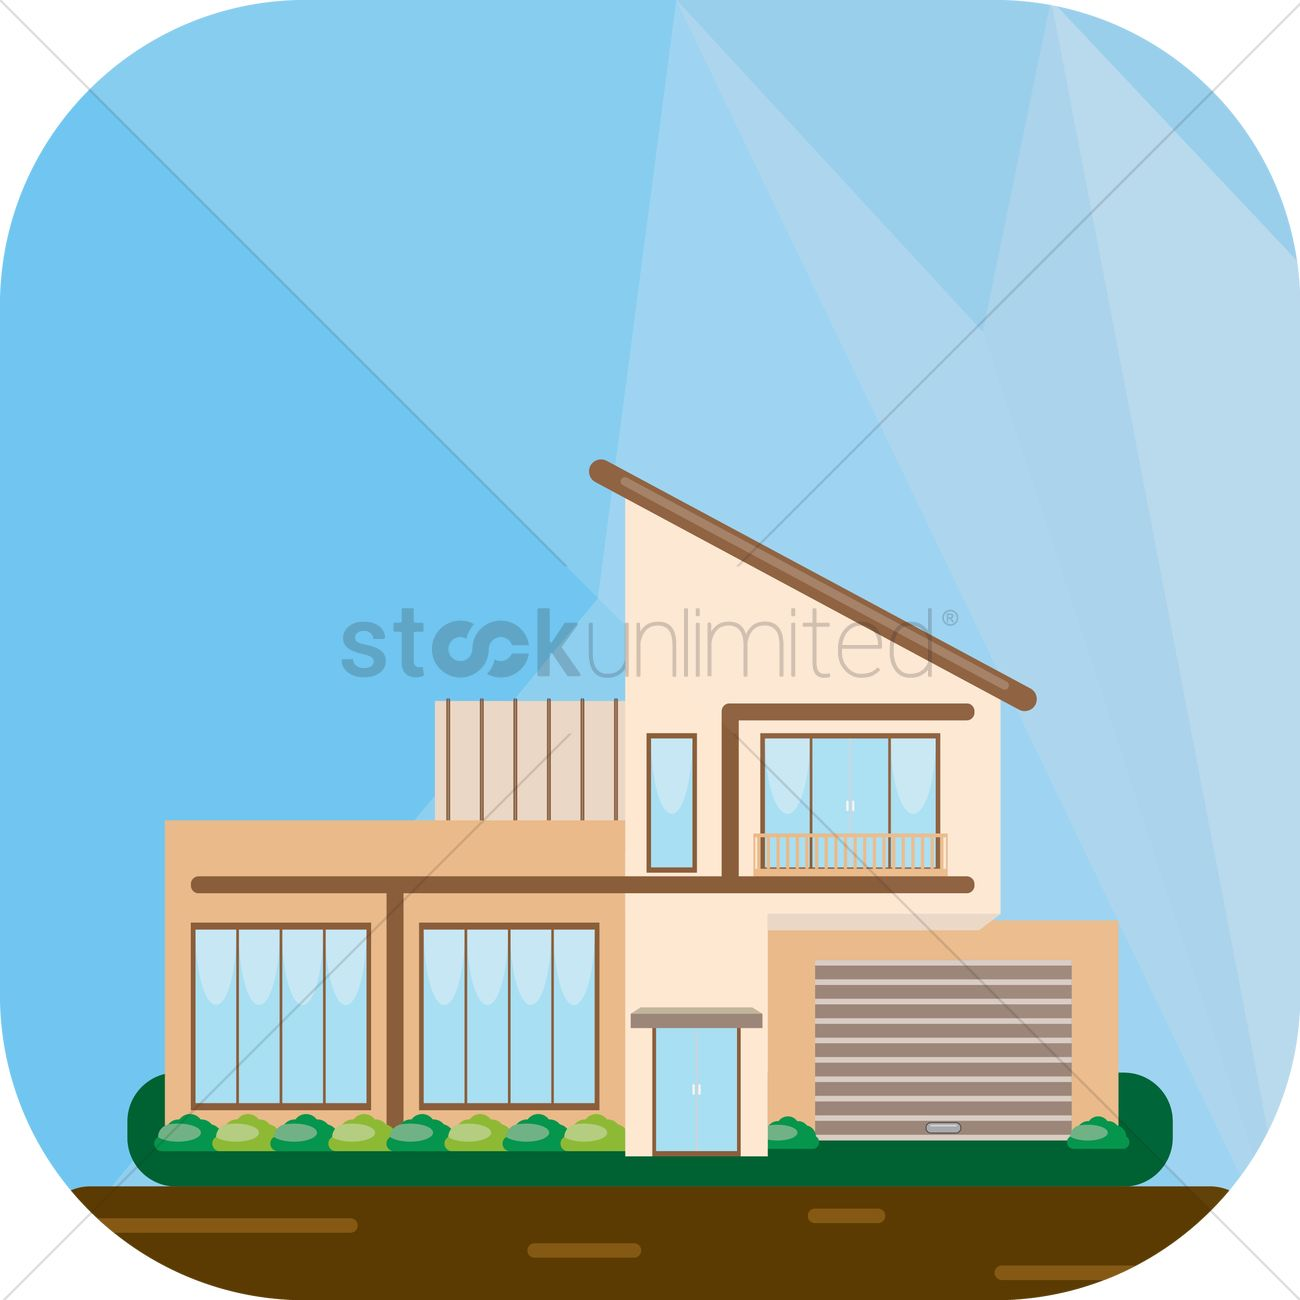 Double storey modern house Vector Image 1350451 StockUnlimited